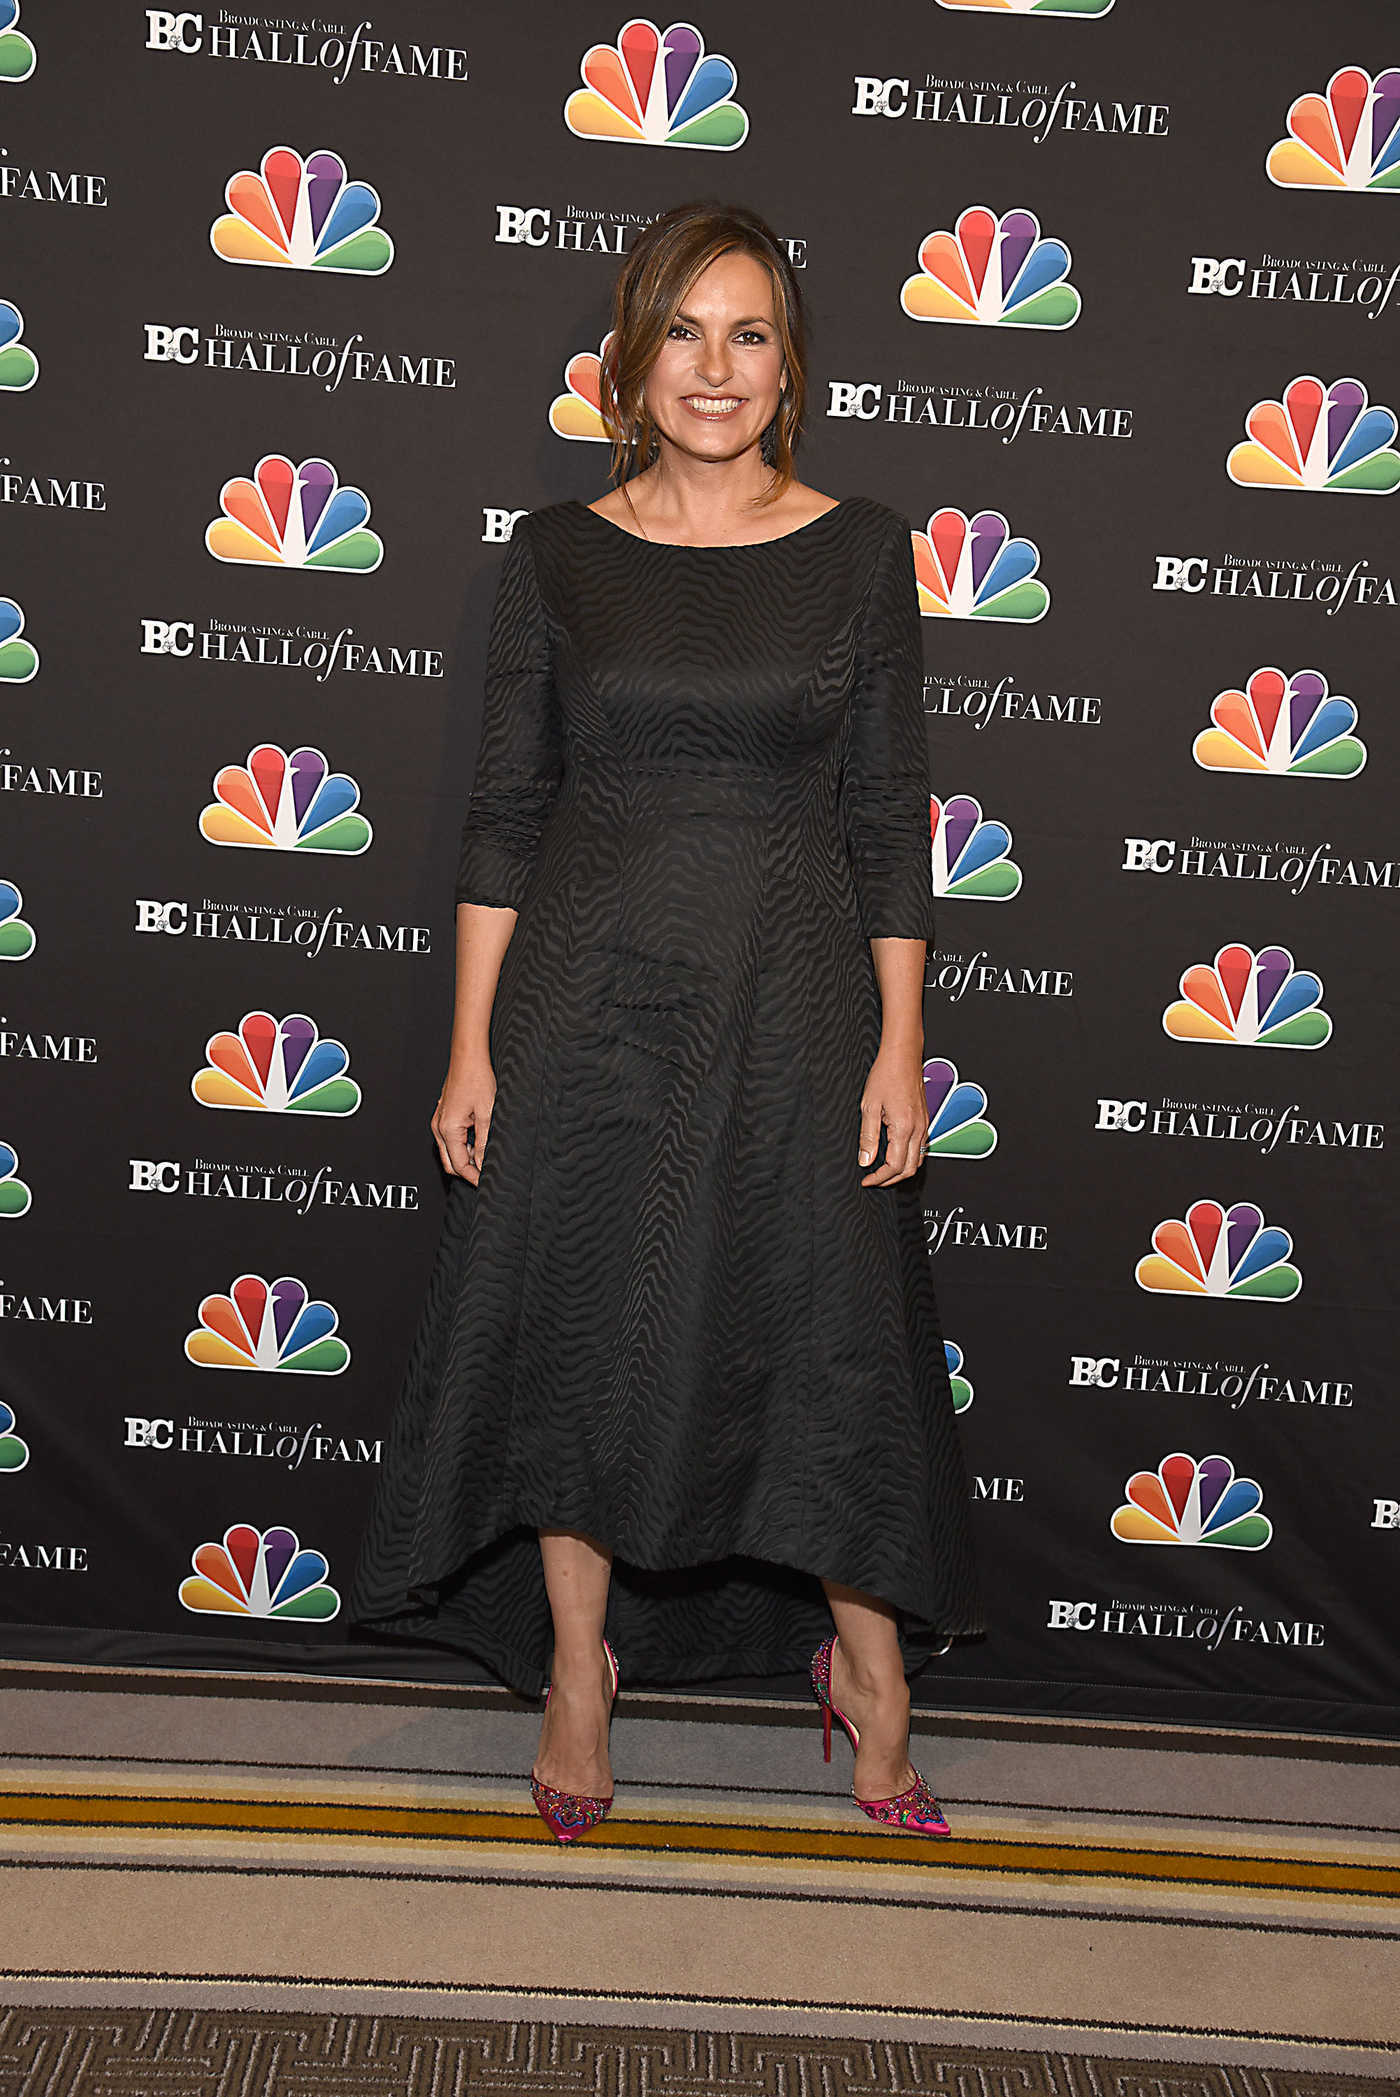 Mariska Hargitay at the Broadcasting and Cable Hall of Fame Awards 27th Anniversary Gala in NYC 10/16/2017